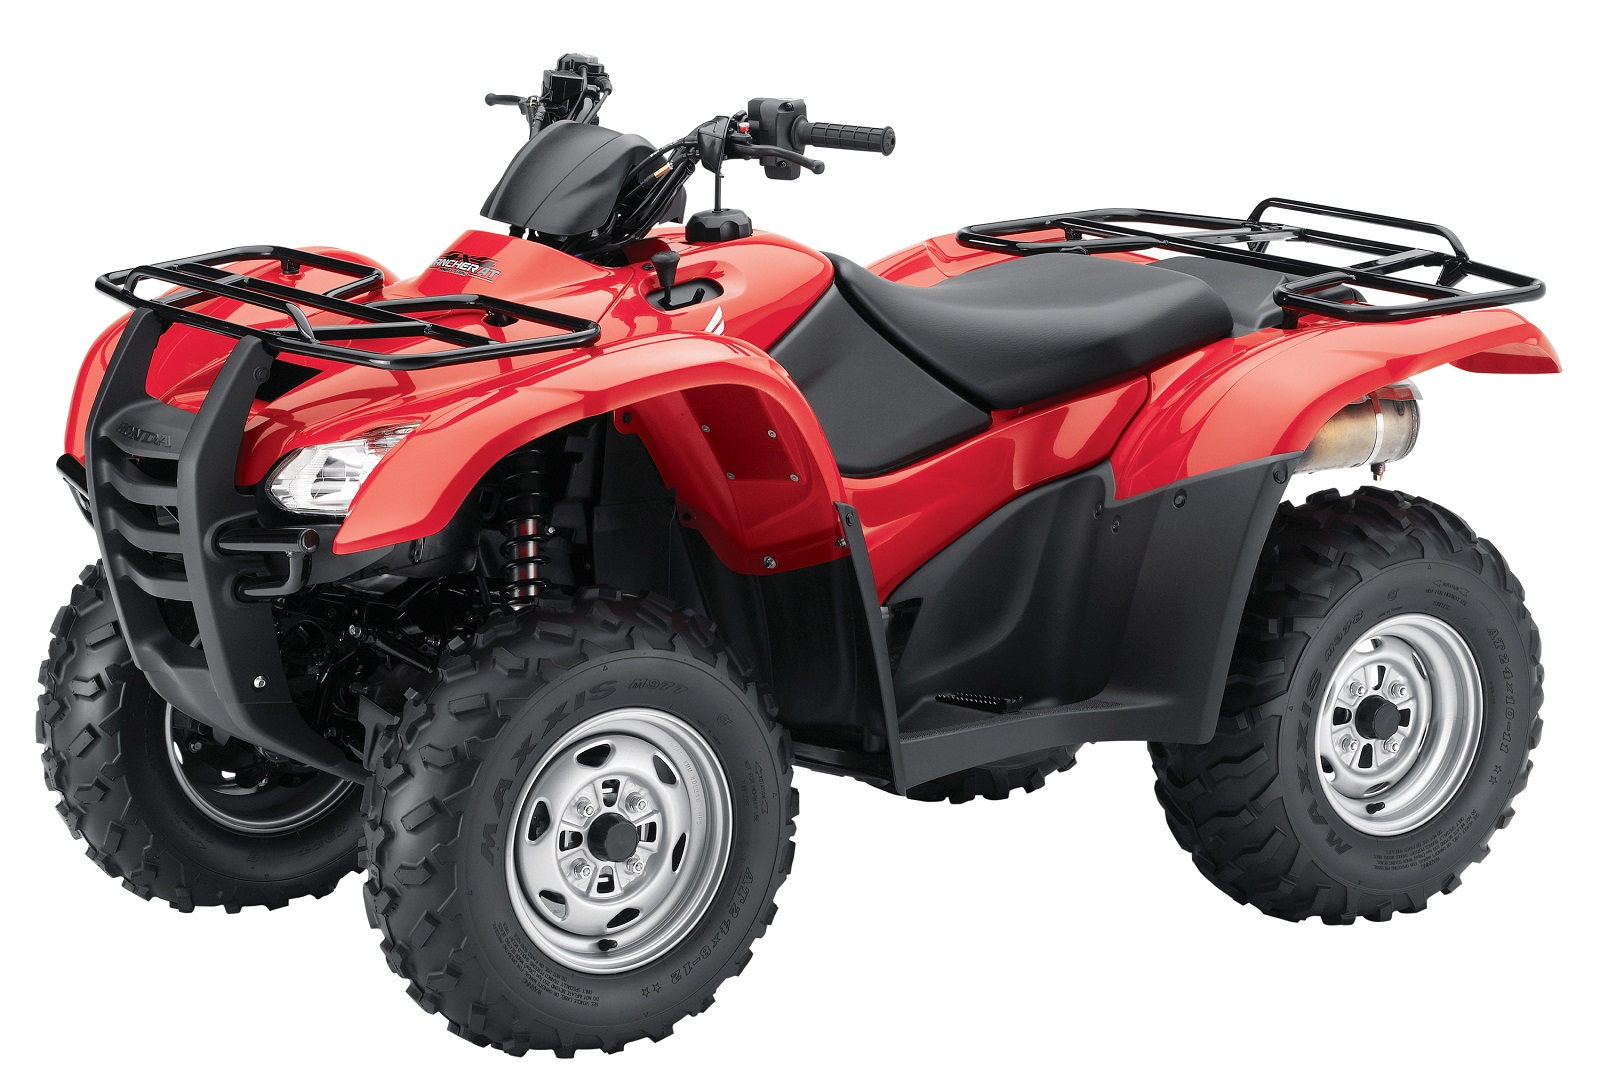 Exceptional 2012 Honda FourTrax Rancher AT With Electric Power Steering | Top Speed. »